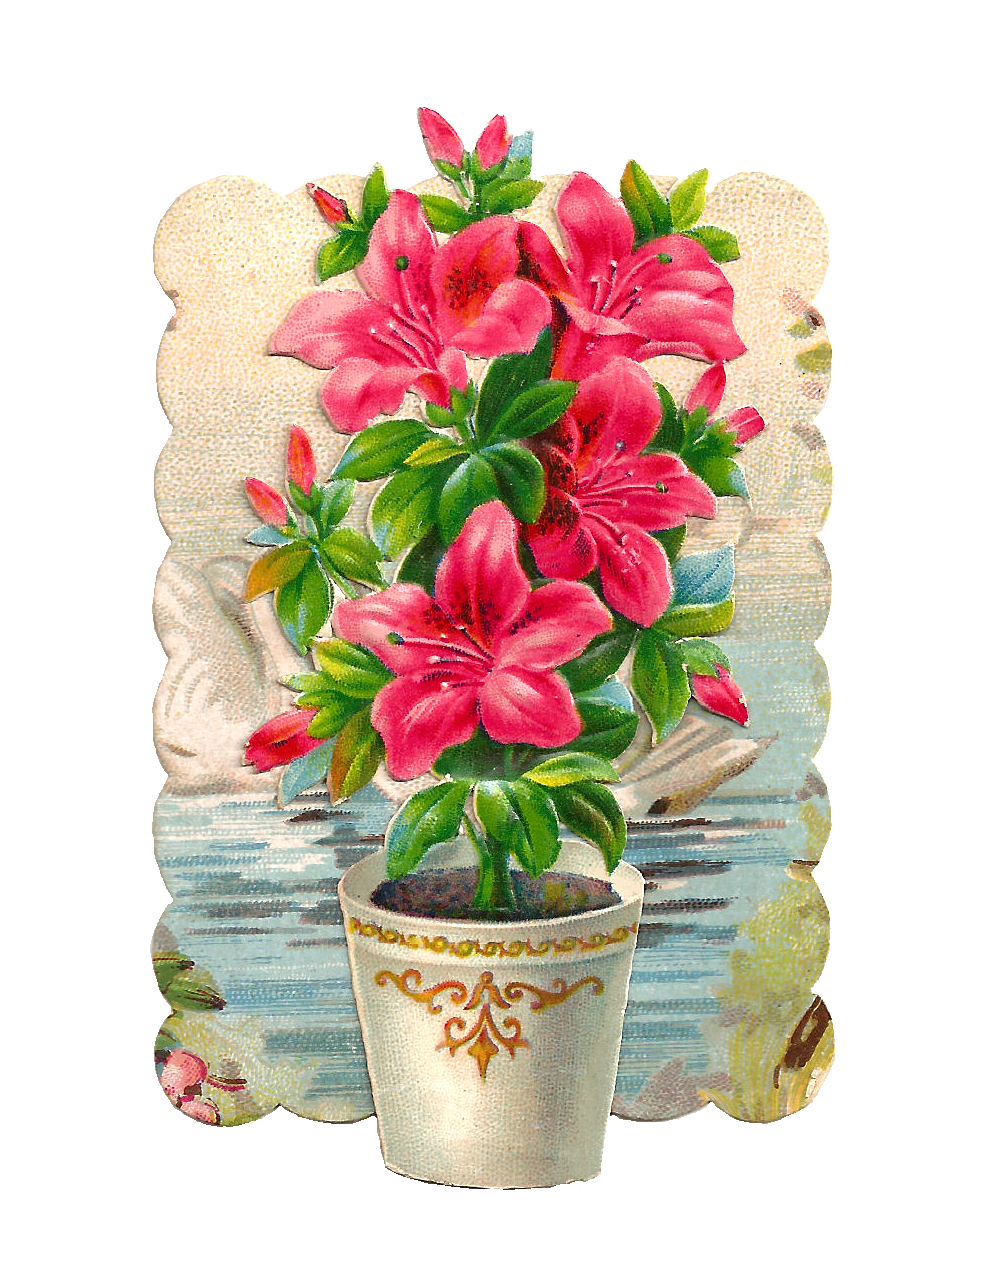 http://1.bp.blogspot.com/-rKz-LqOGnw0/Up5MG-m1Y6I/AAAAAAAASH8/AhRBO--sccQ/s1600/potted_flowers_pink_backgroundpng.png